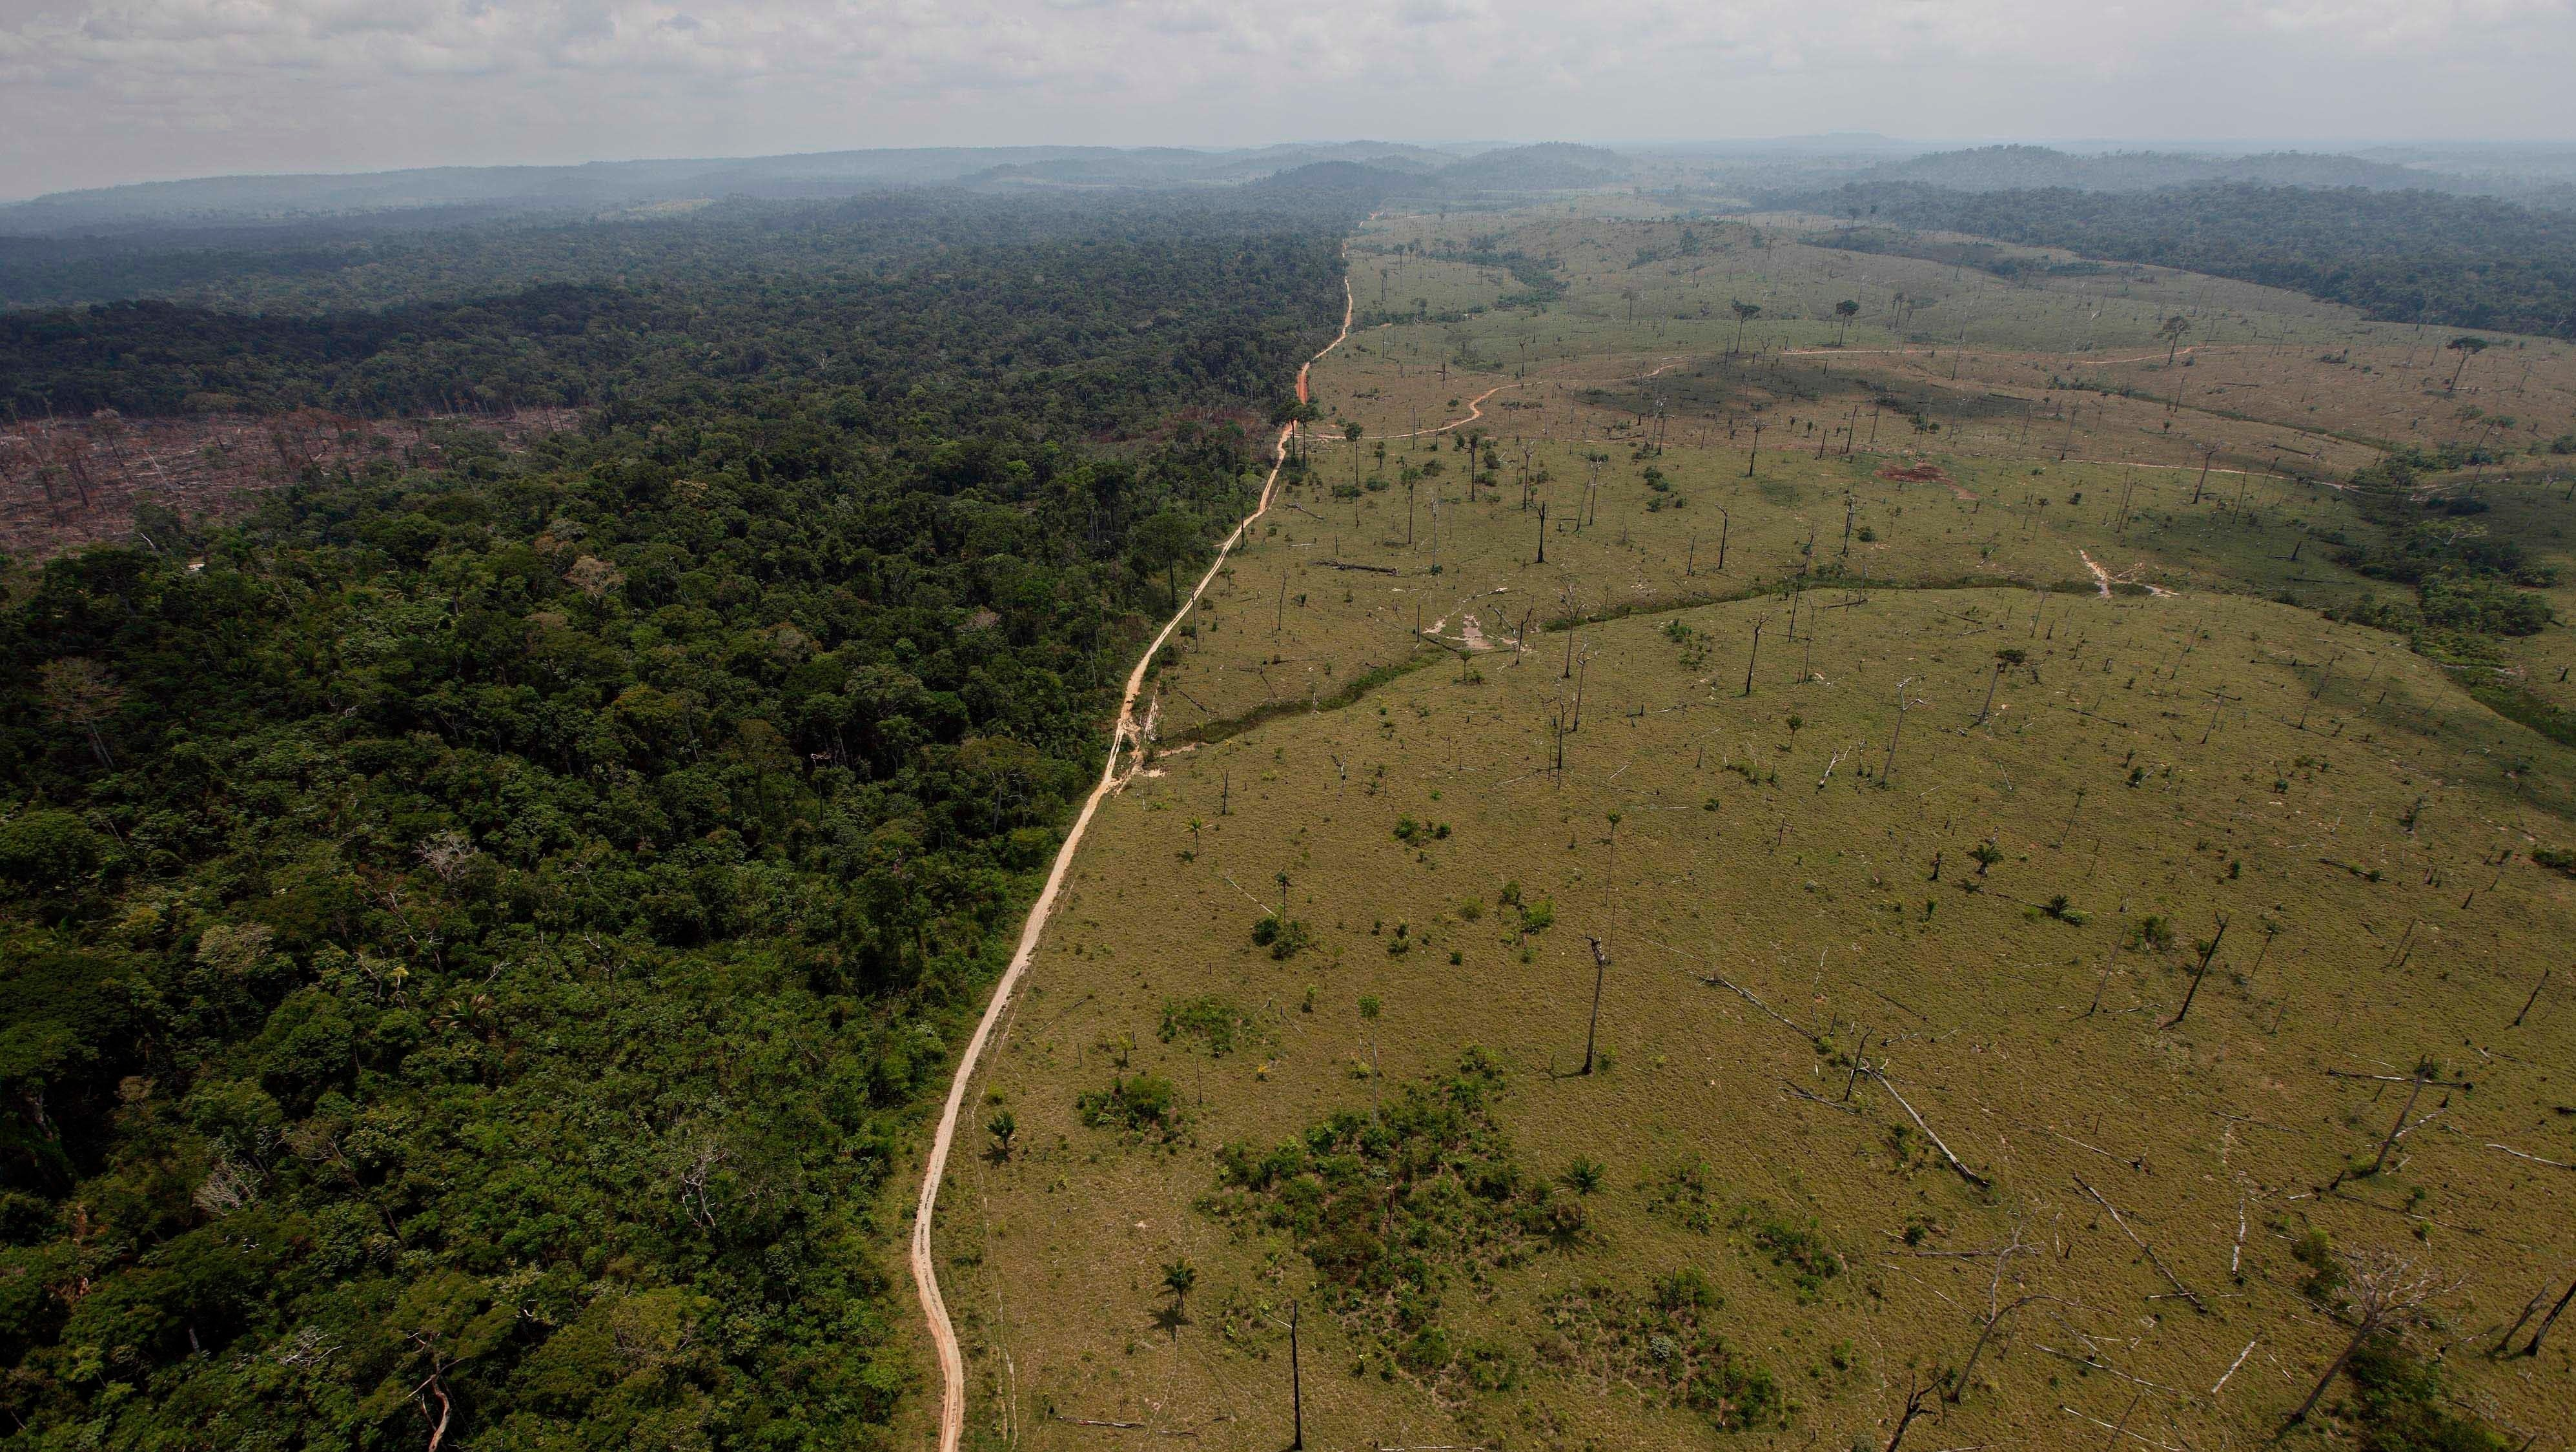 Deforestation And Climate Change Could Split The Amazon Rainforest In Two, Study Finds